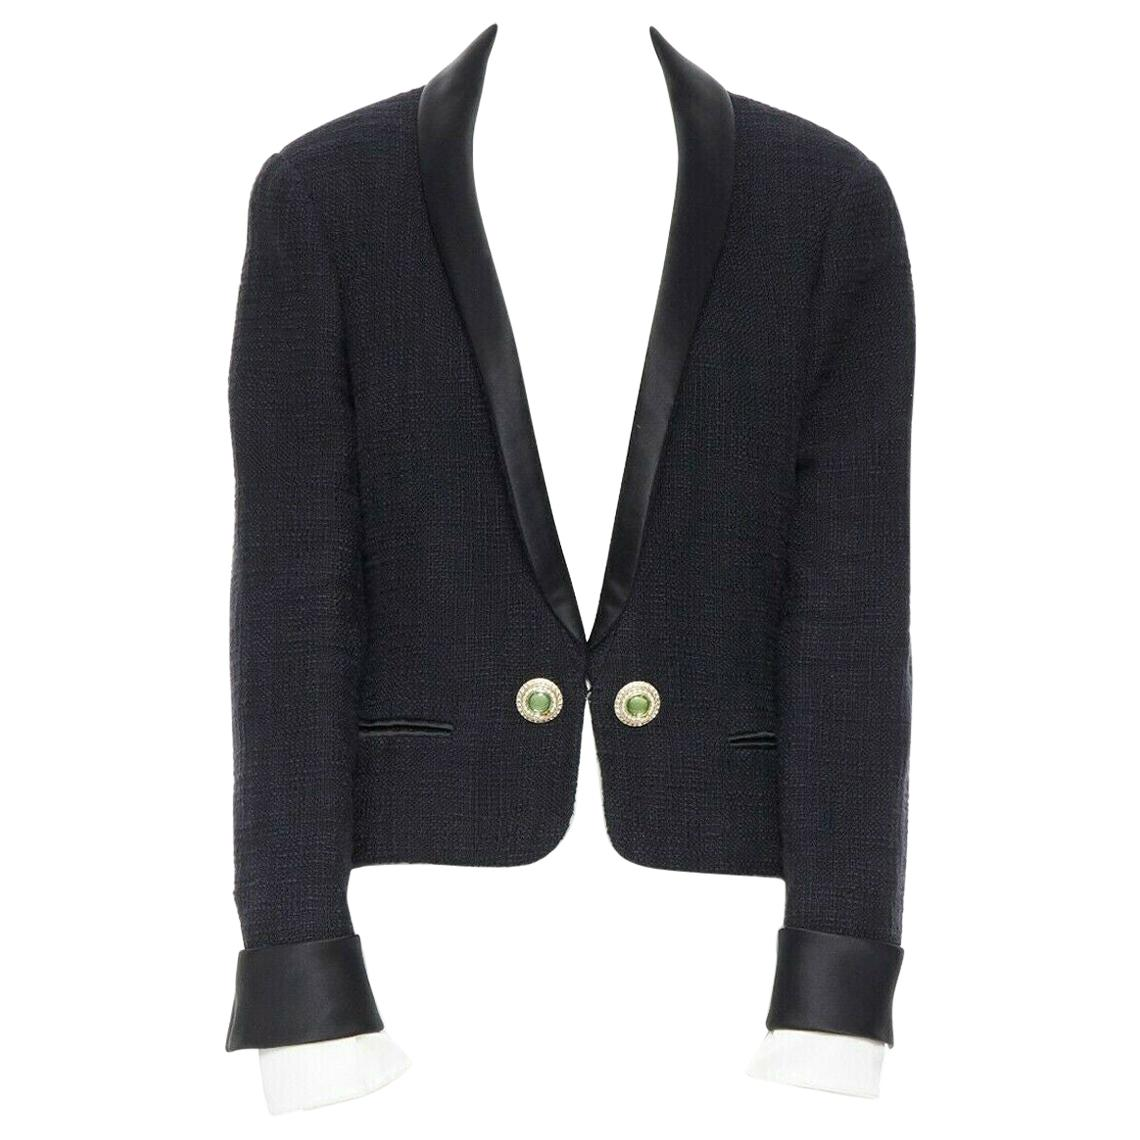 runway CHANEL 12A Paris-Bombay tweed satin tuxedo with green jewel button FR44